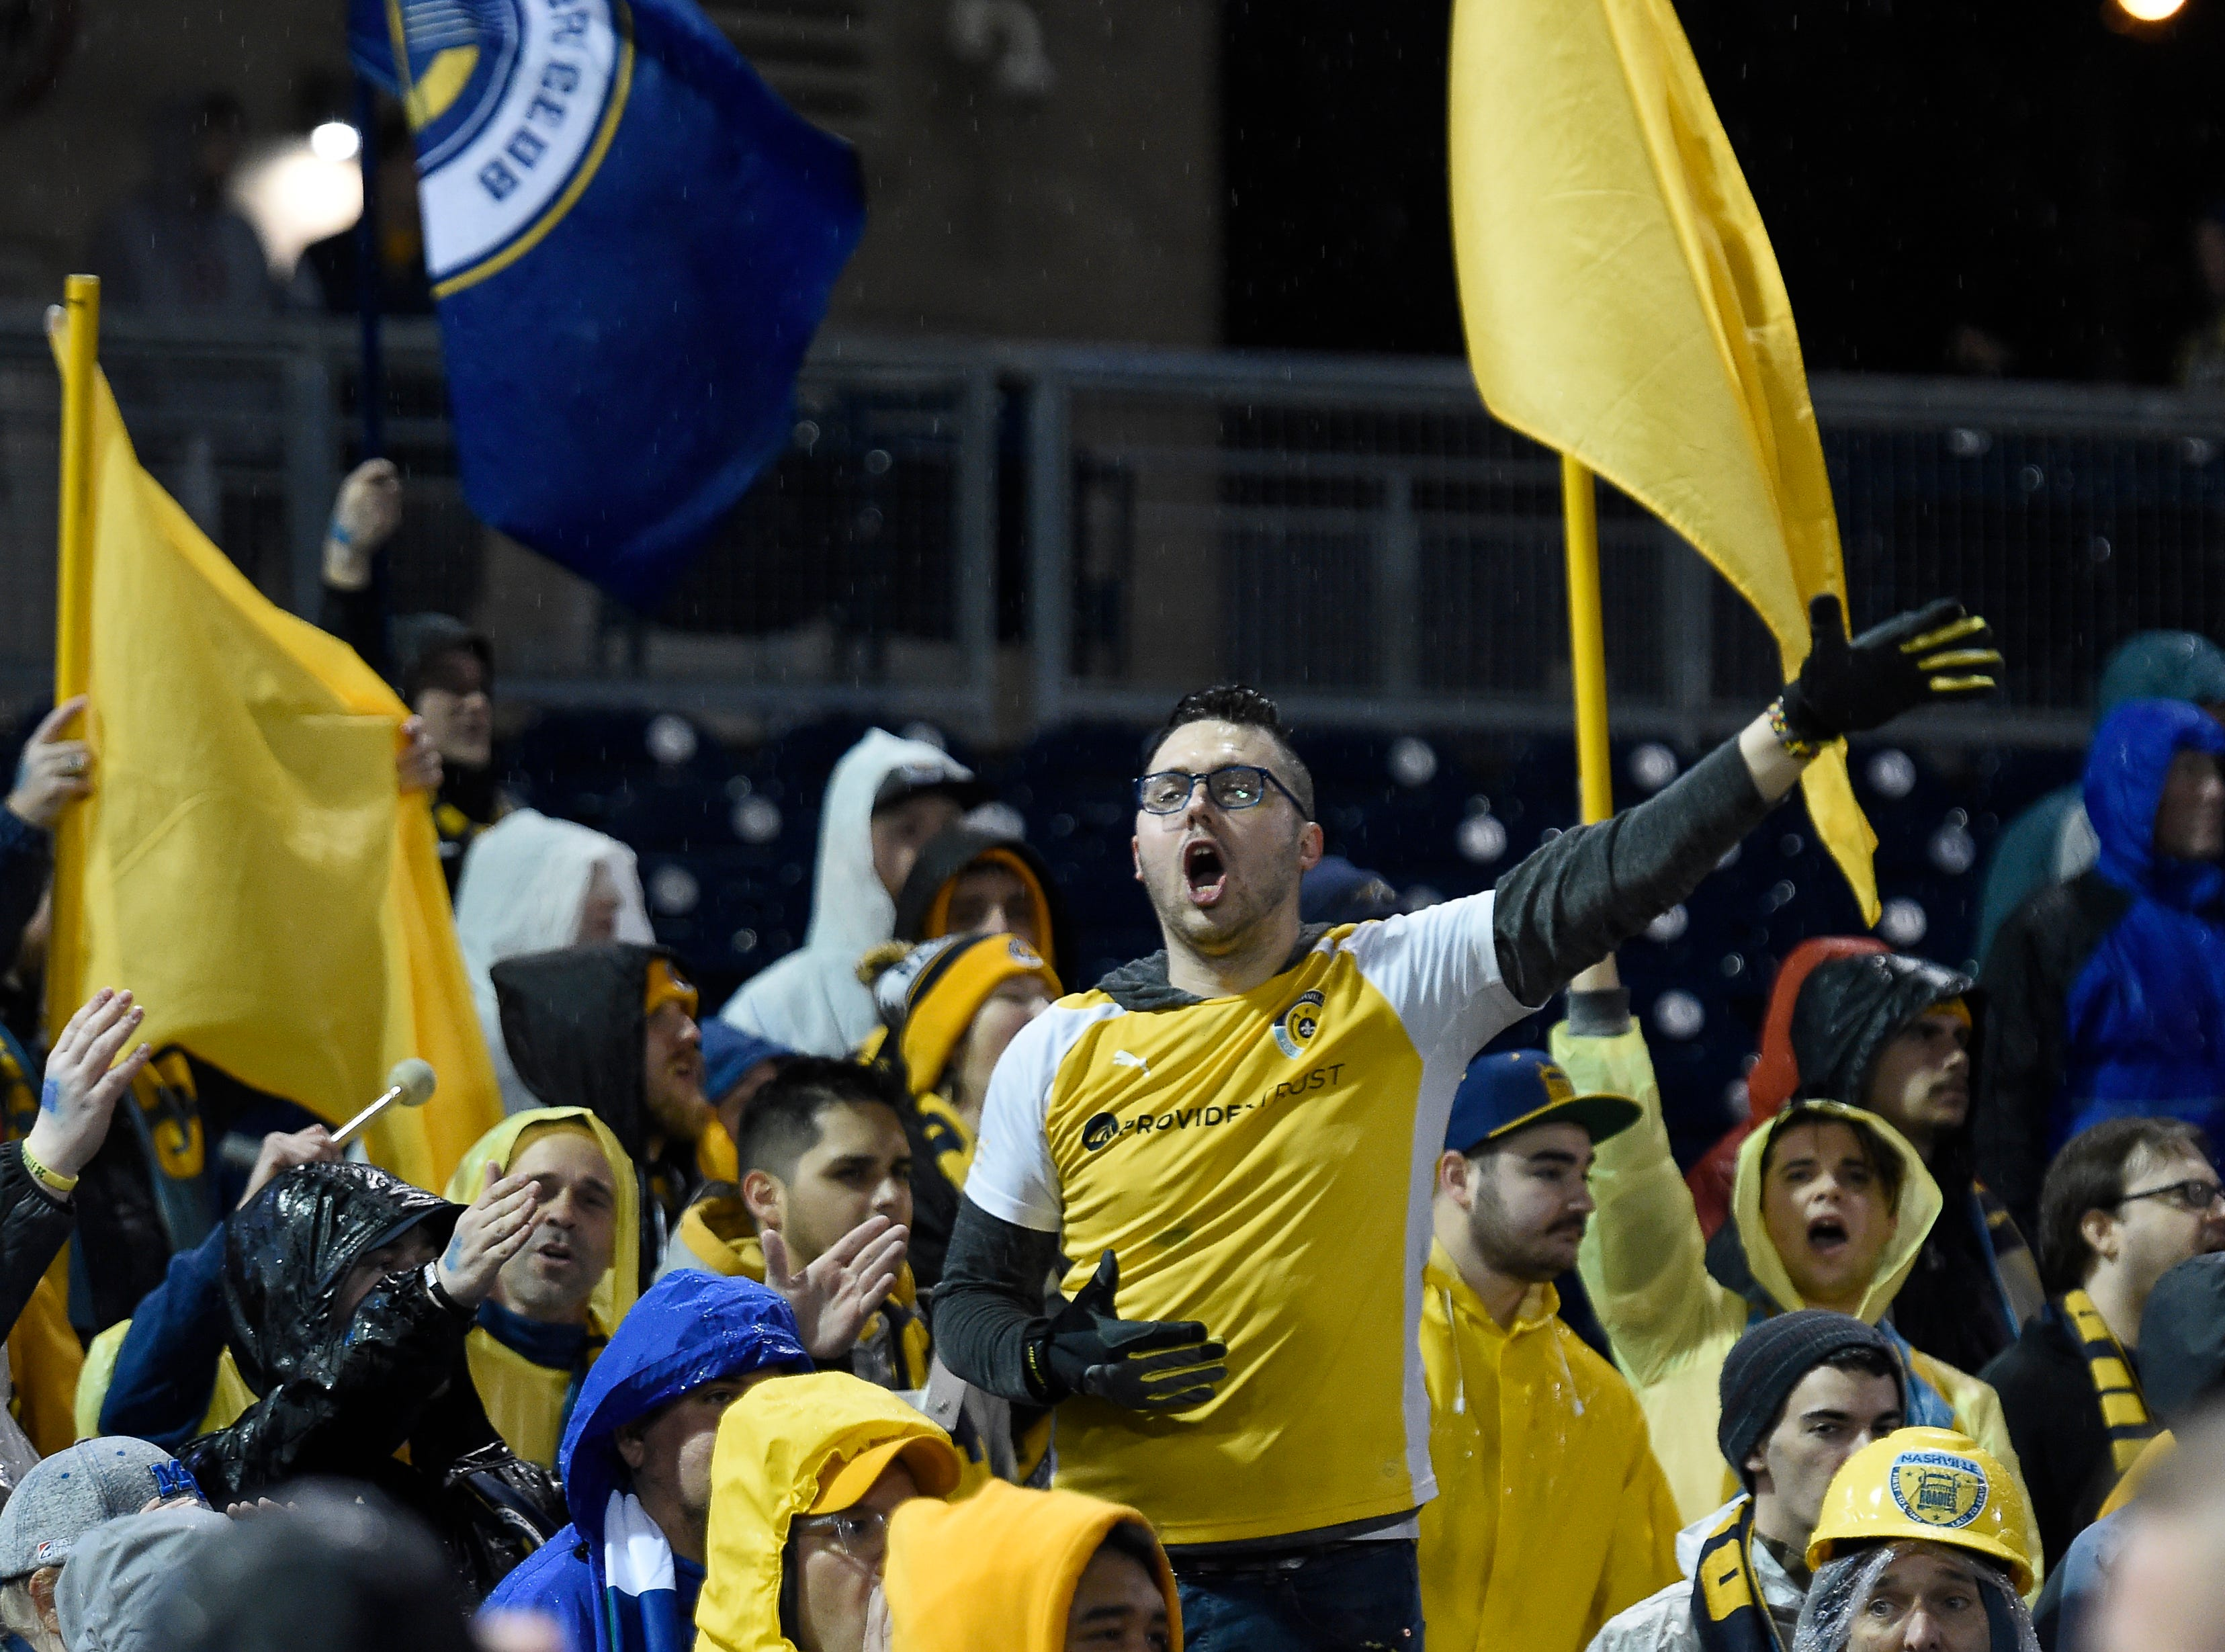 Nashville SC supporters group The Roadies cheer for their team at First Tennessee Park before their preseason match against New York City FC Friday, Feb. 22, 2019 in Nashville, Tenn.